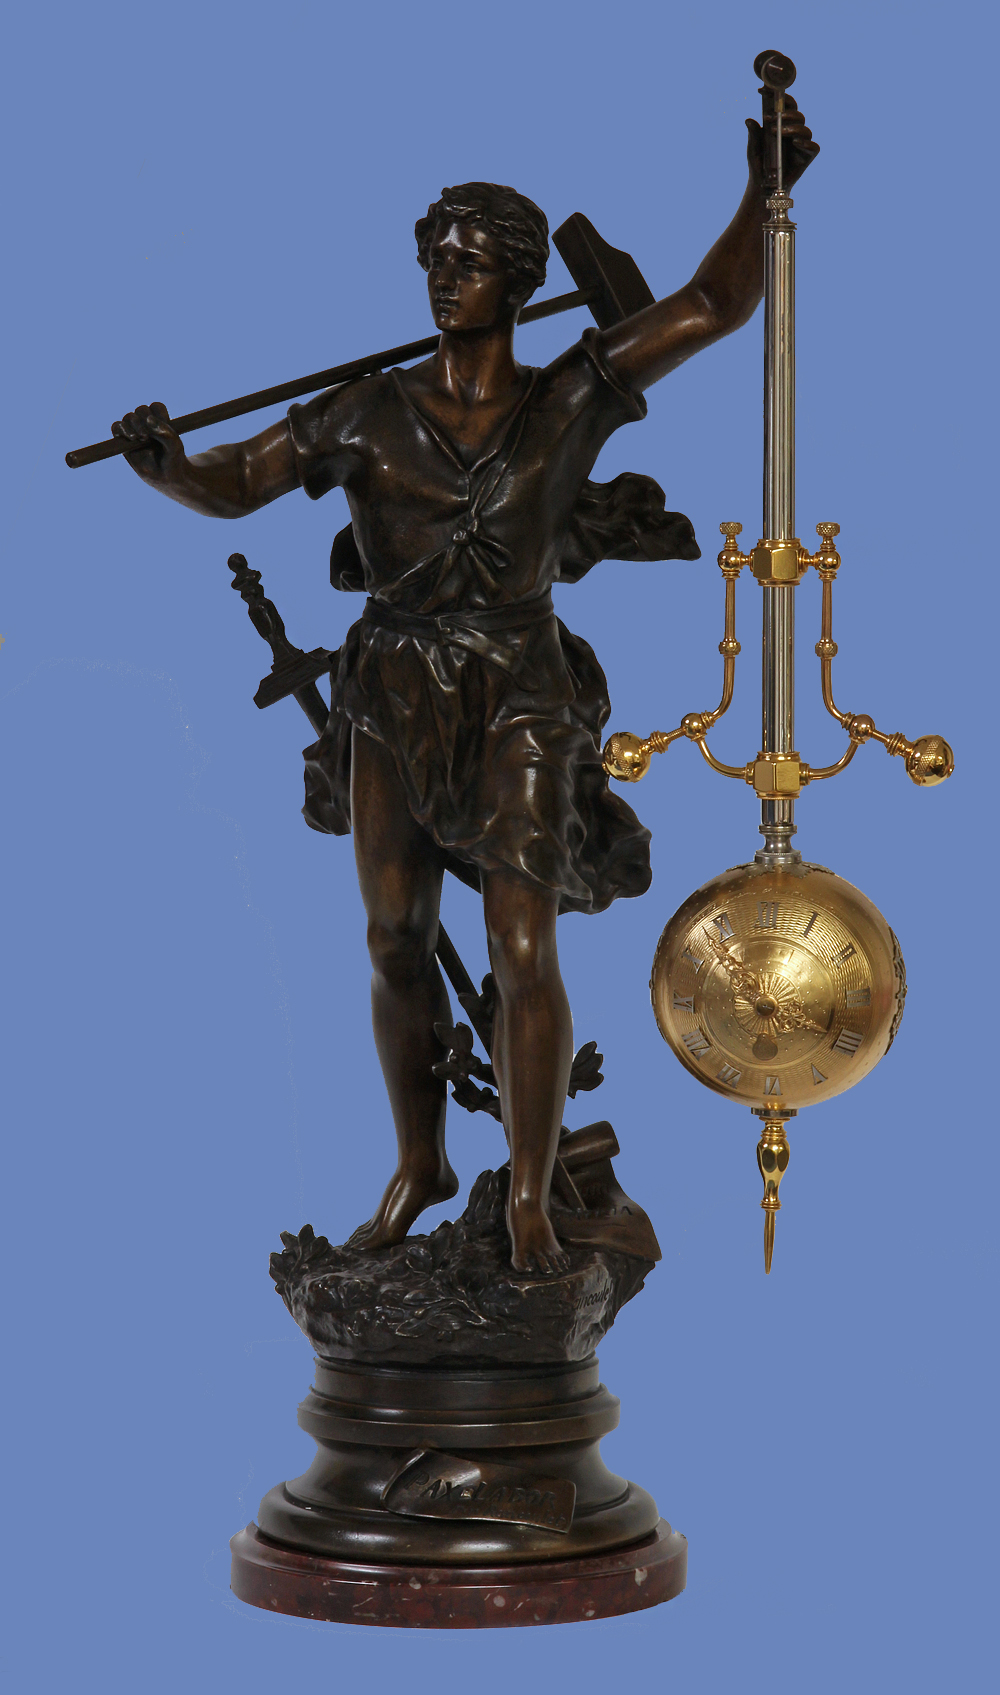 c.1885 French Gilt and Silvered-Bronze and Patinated Metal Torsion Mystery Clock